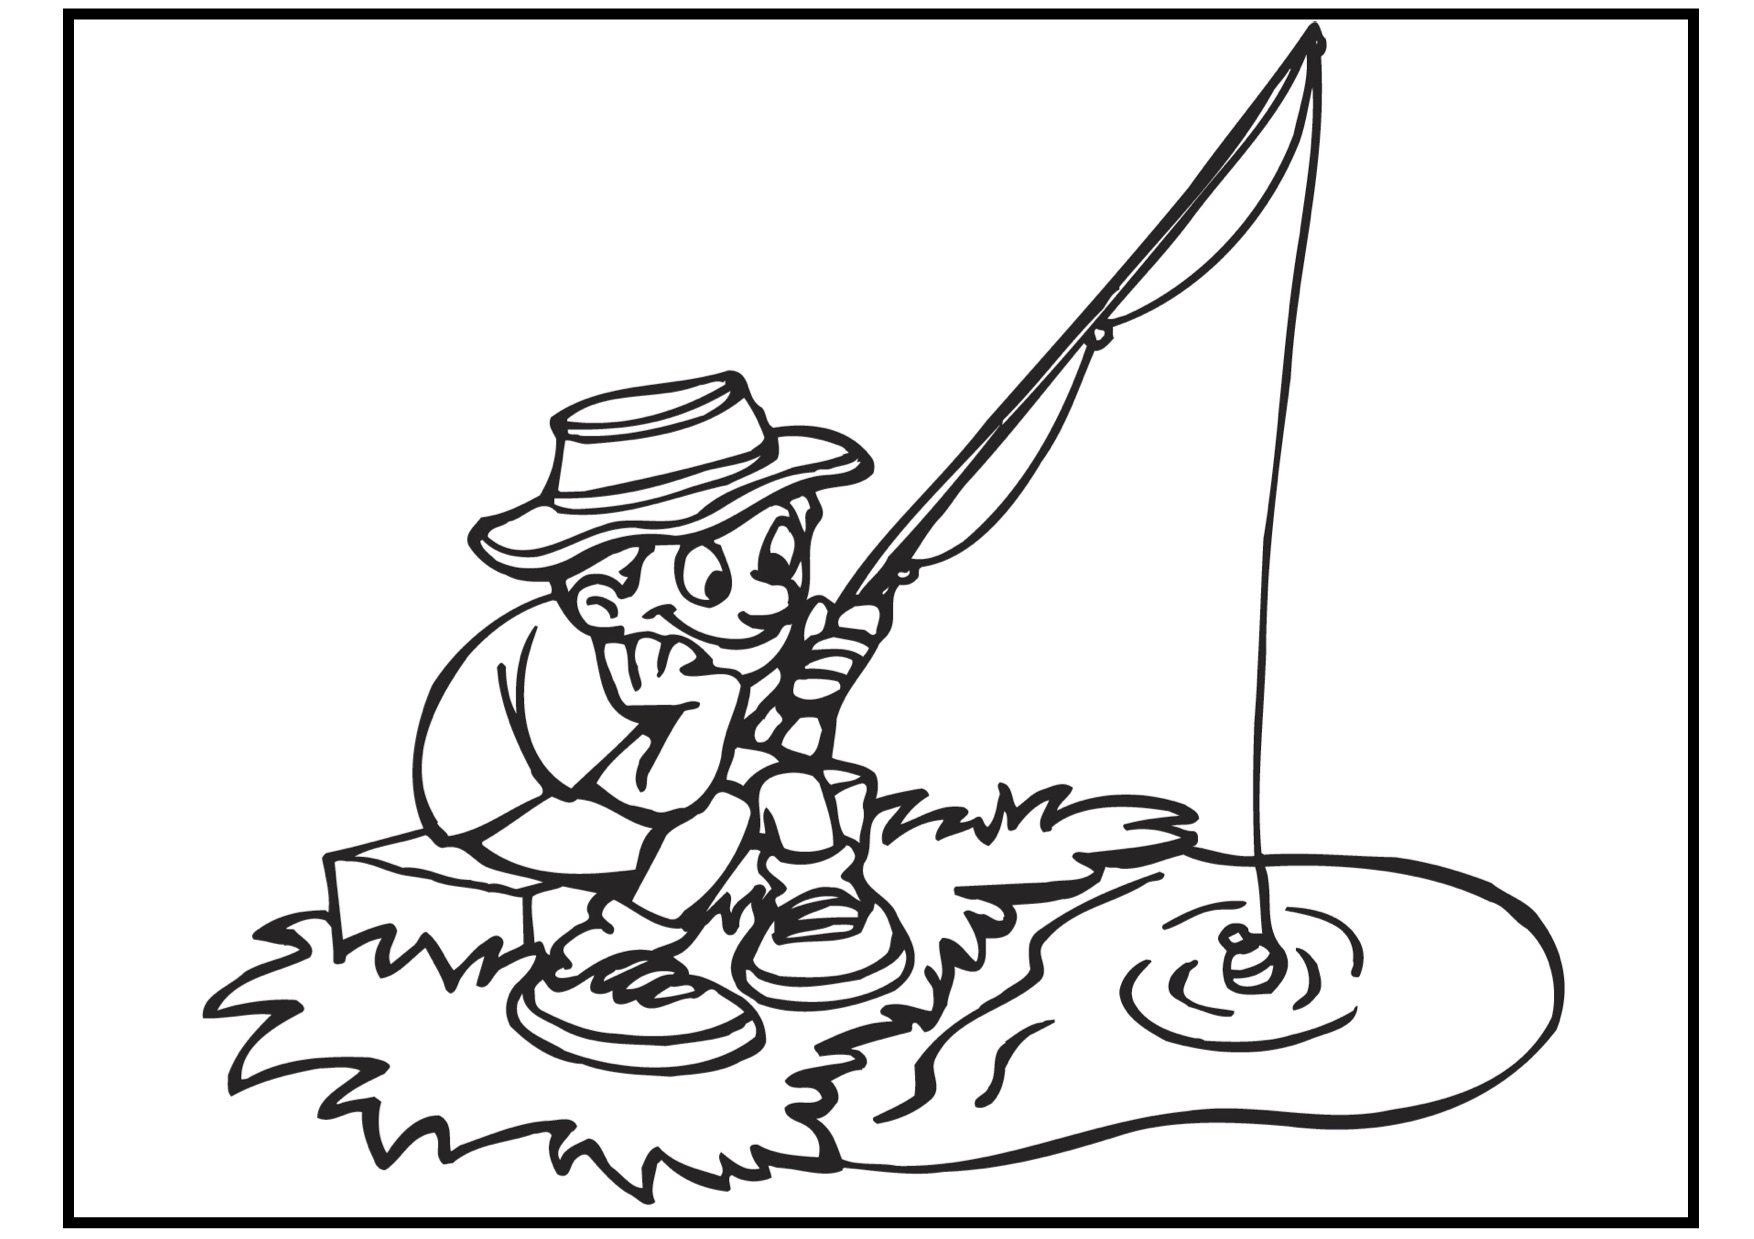 coloring pages of fishing - photo#12